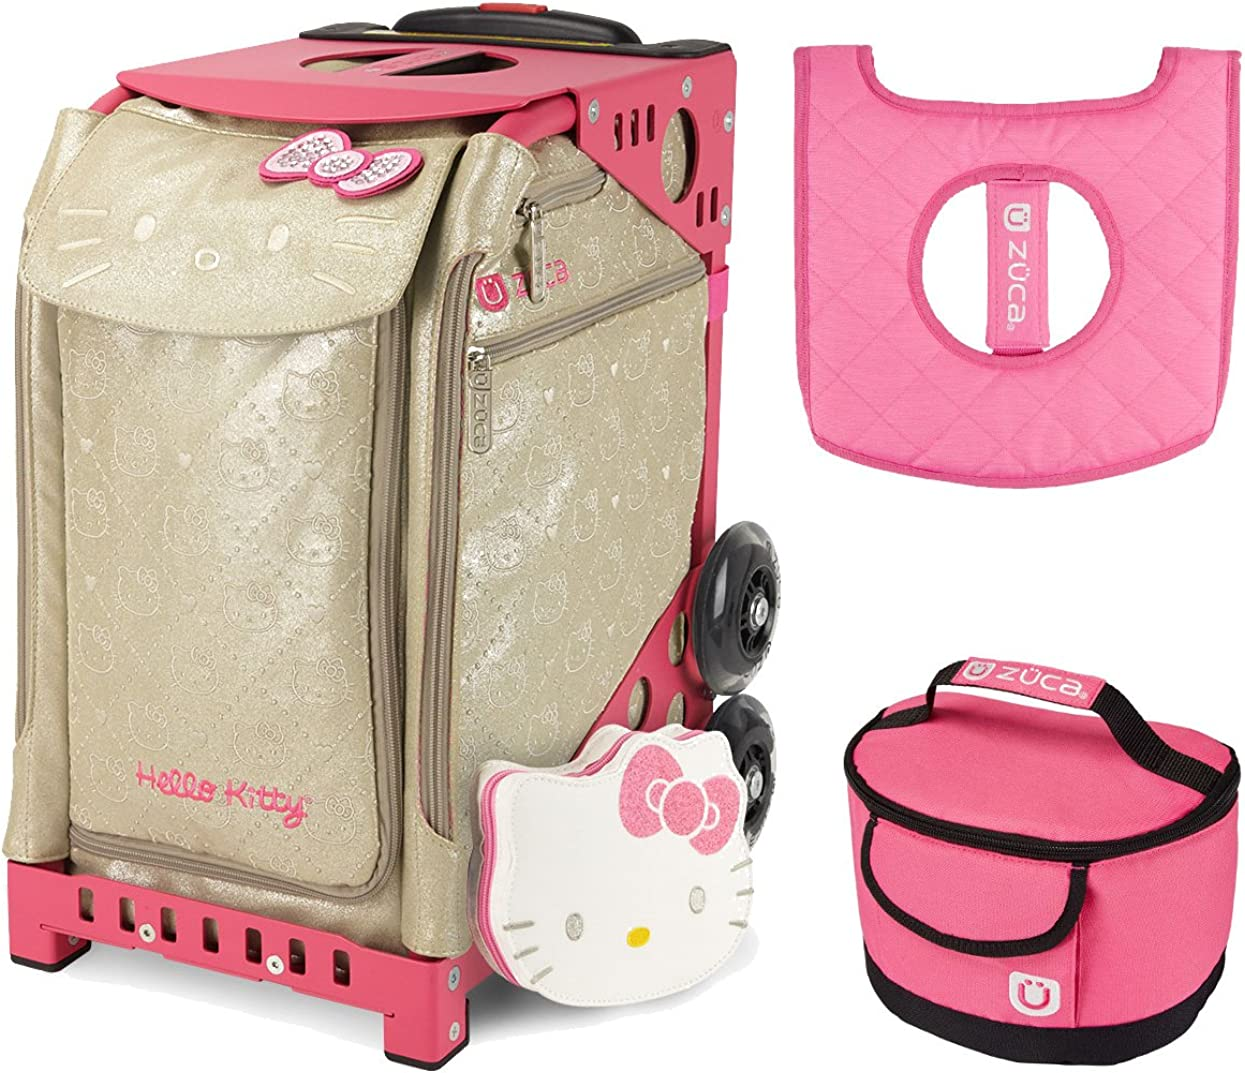 ZUCA Sport Bag – Hello Kitty Good As Gold with Gift Lunchbox and Seat Cover Pink Frame